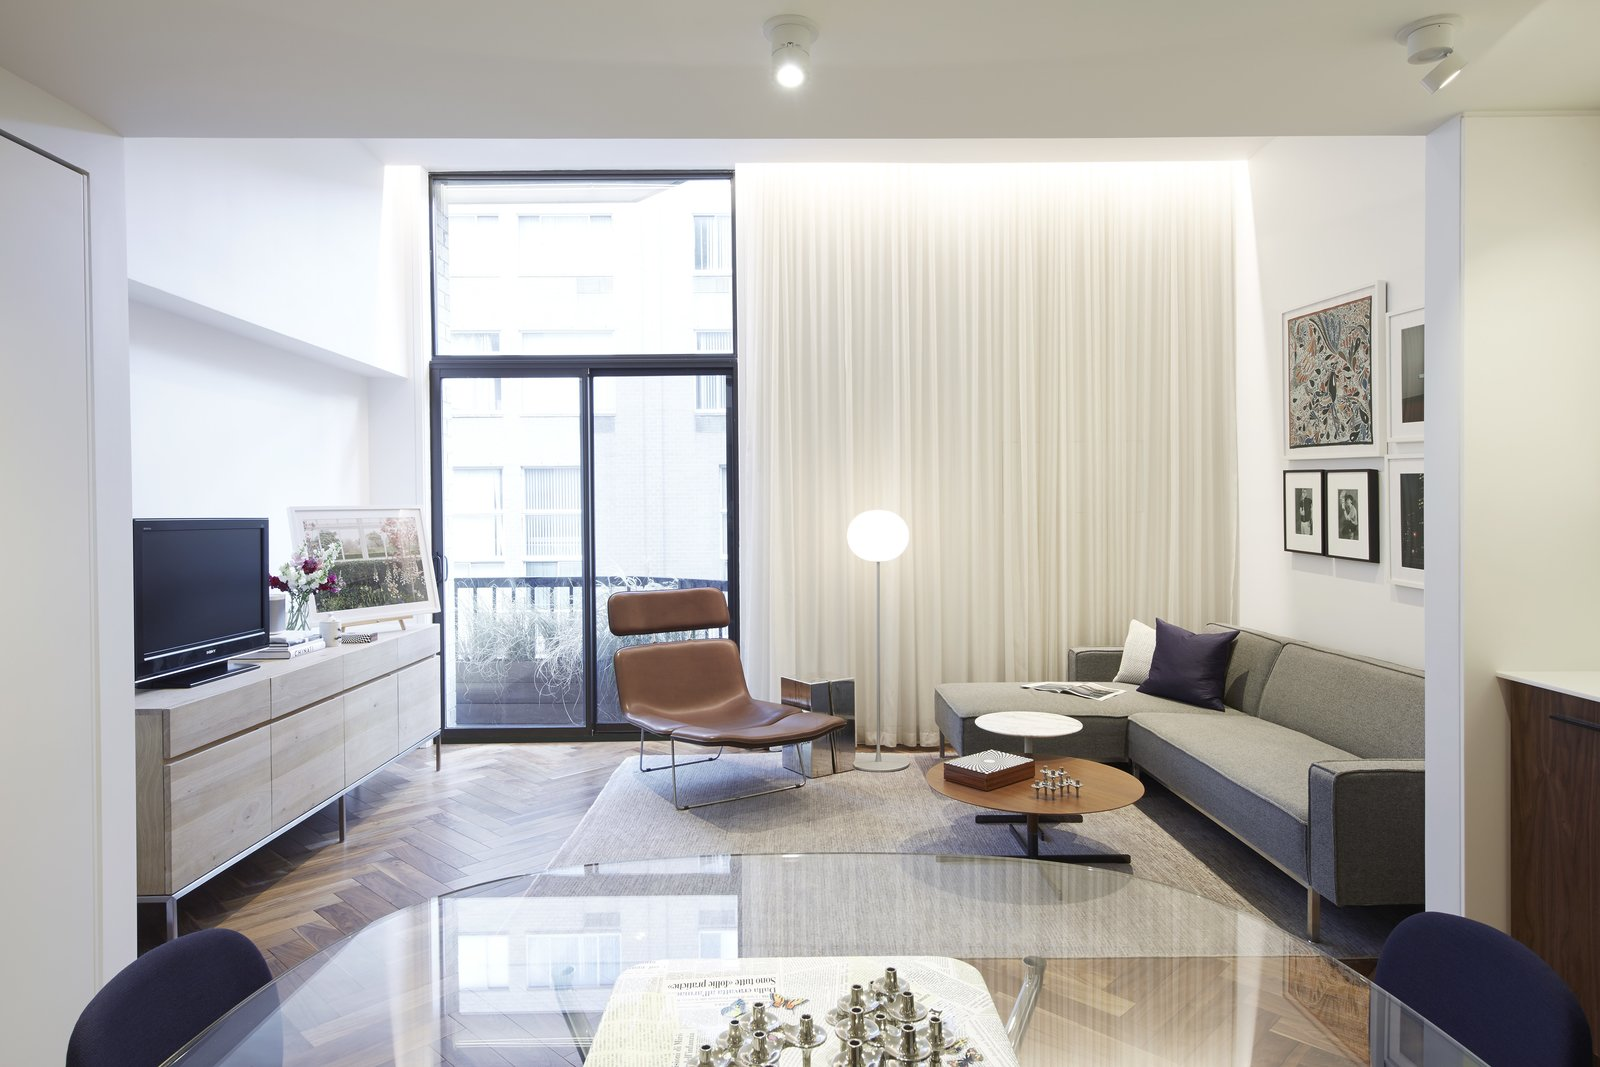 In Just 450 Square Feet, A New York Architect Crafts a ...